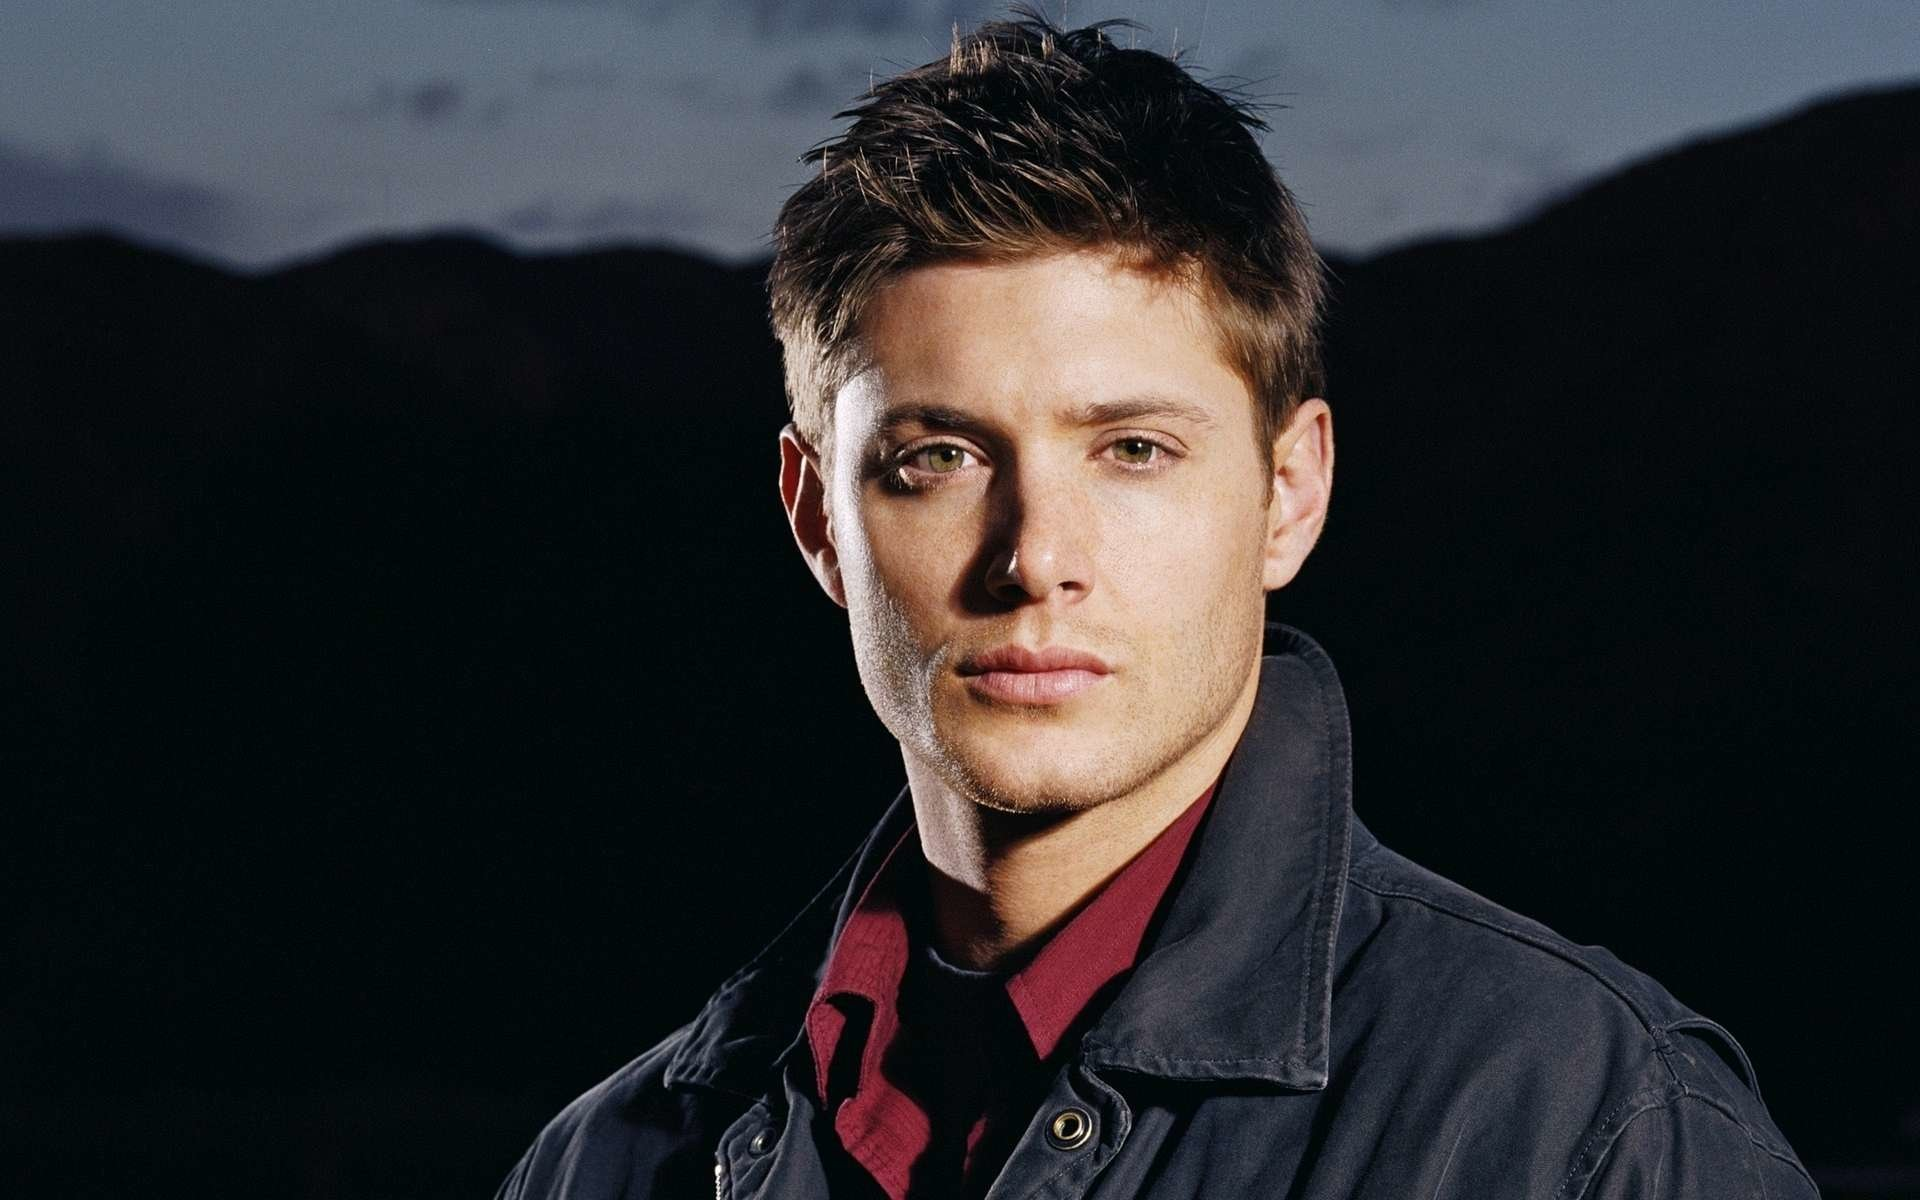 Jensen Ackles HD Wallpaper | Background Image | 1920x1200 | ID:337007 -  Wallpaper Abyss